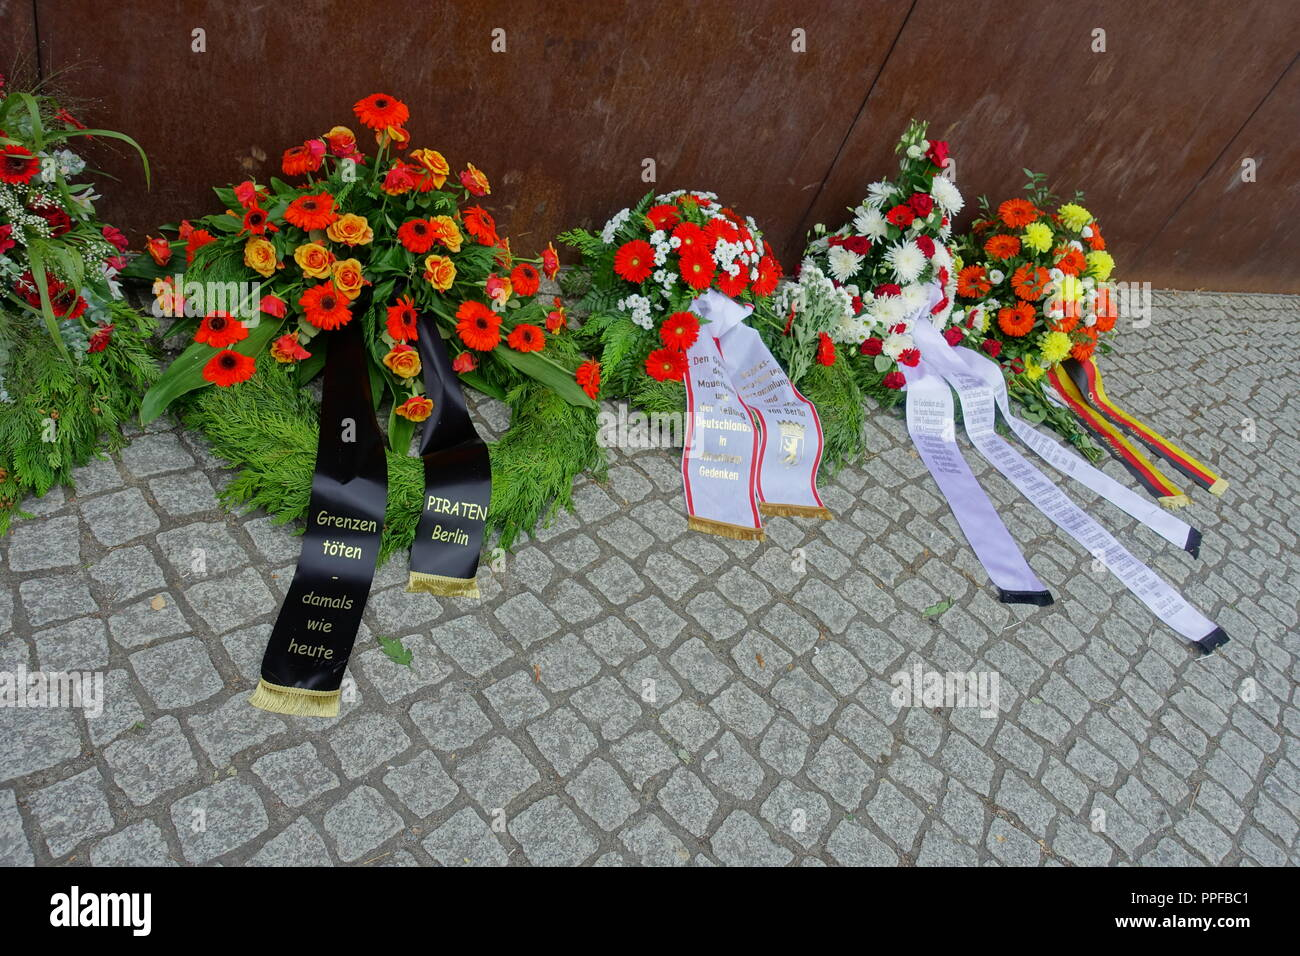 Berliner Mauer, Gedenken an die Maueropfer am 13.8.2018 - Berlin Wall, Commemoration for the Victims of the Berlin Wall on August 13, 2018 - Stock Image